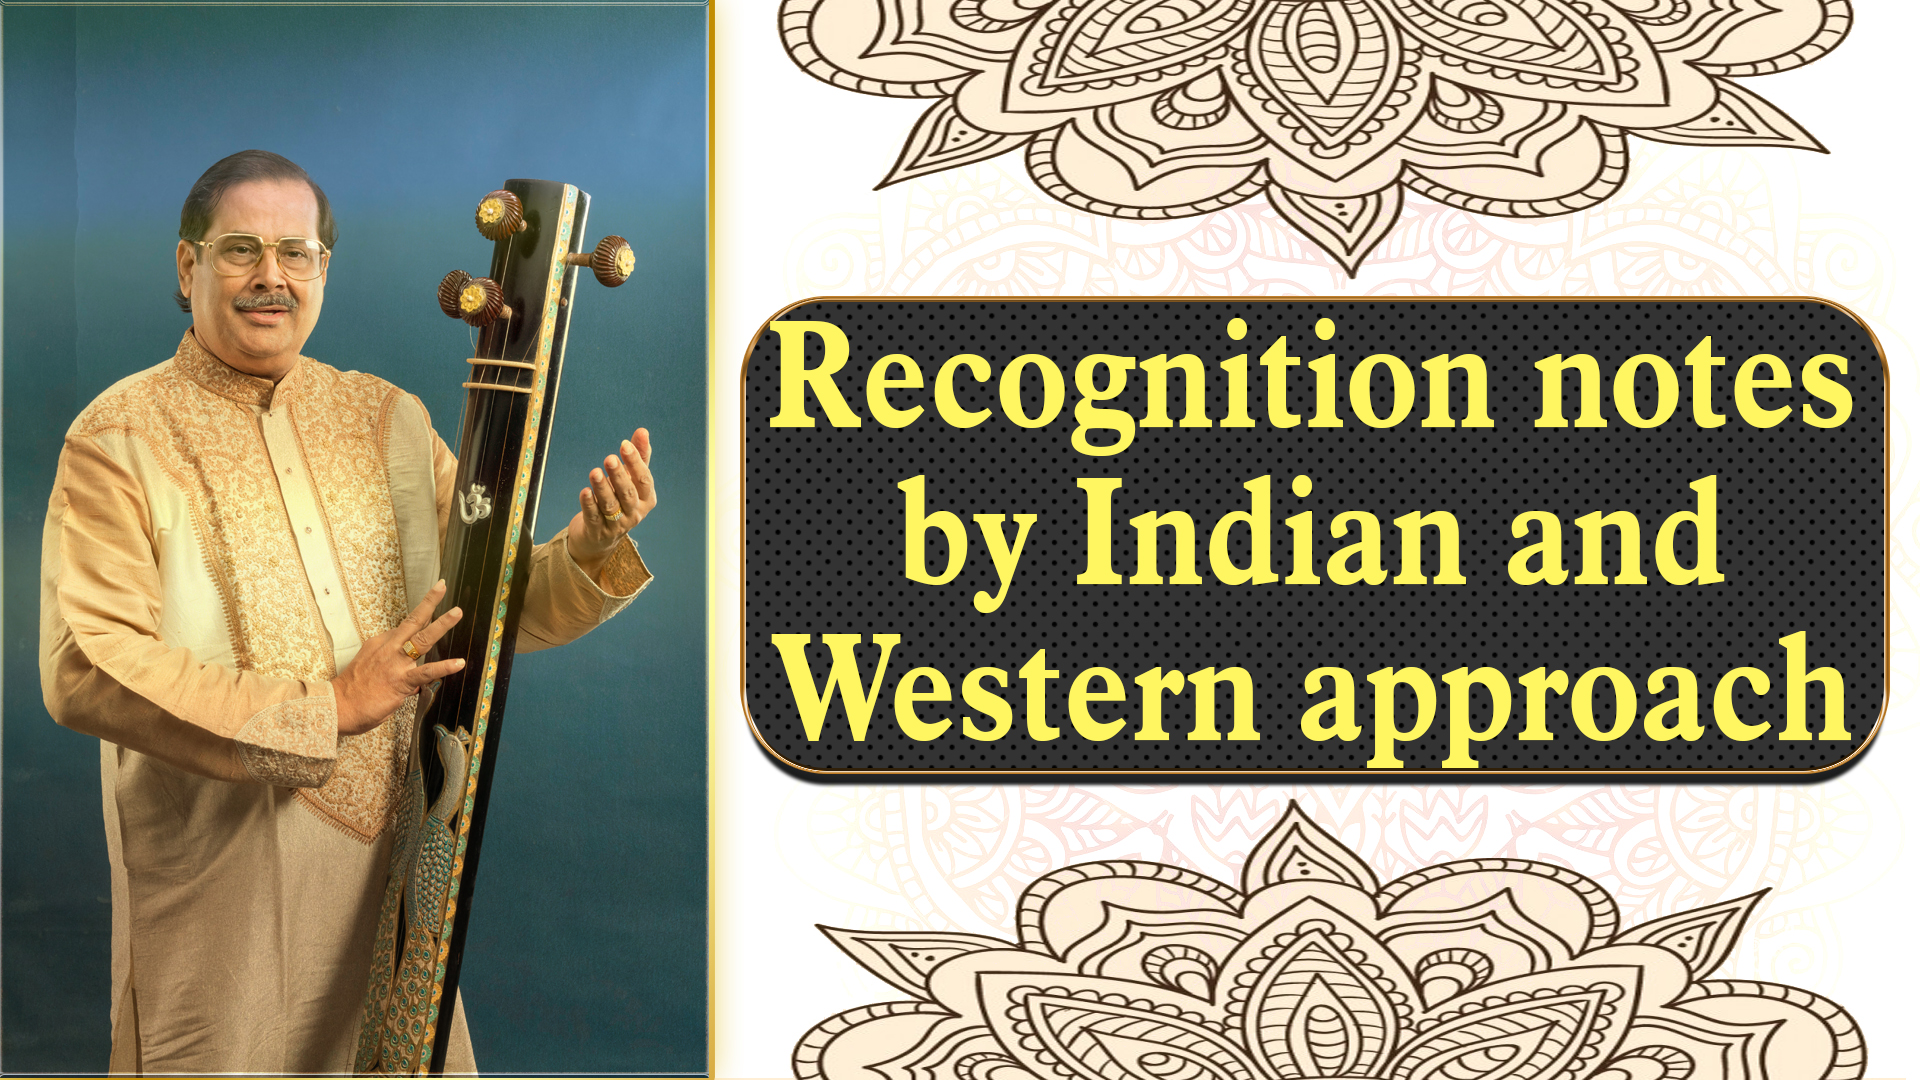 3- Recognition of 12 notes or frequency by Indian and Western approach